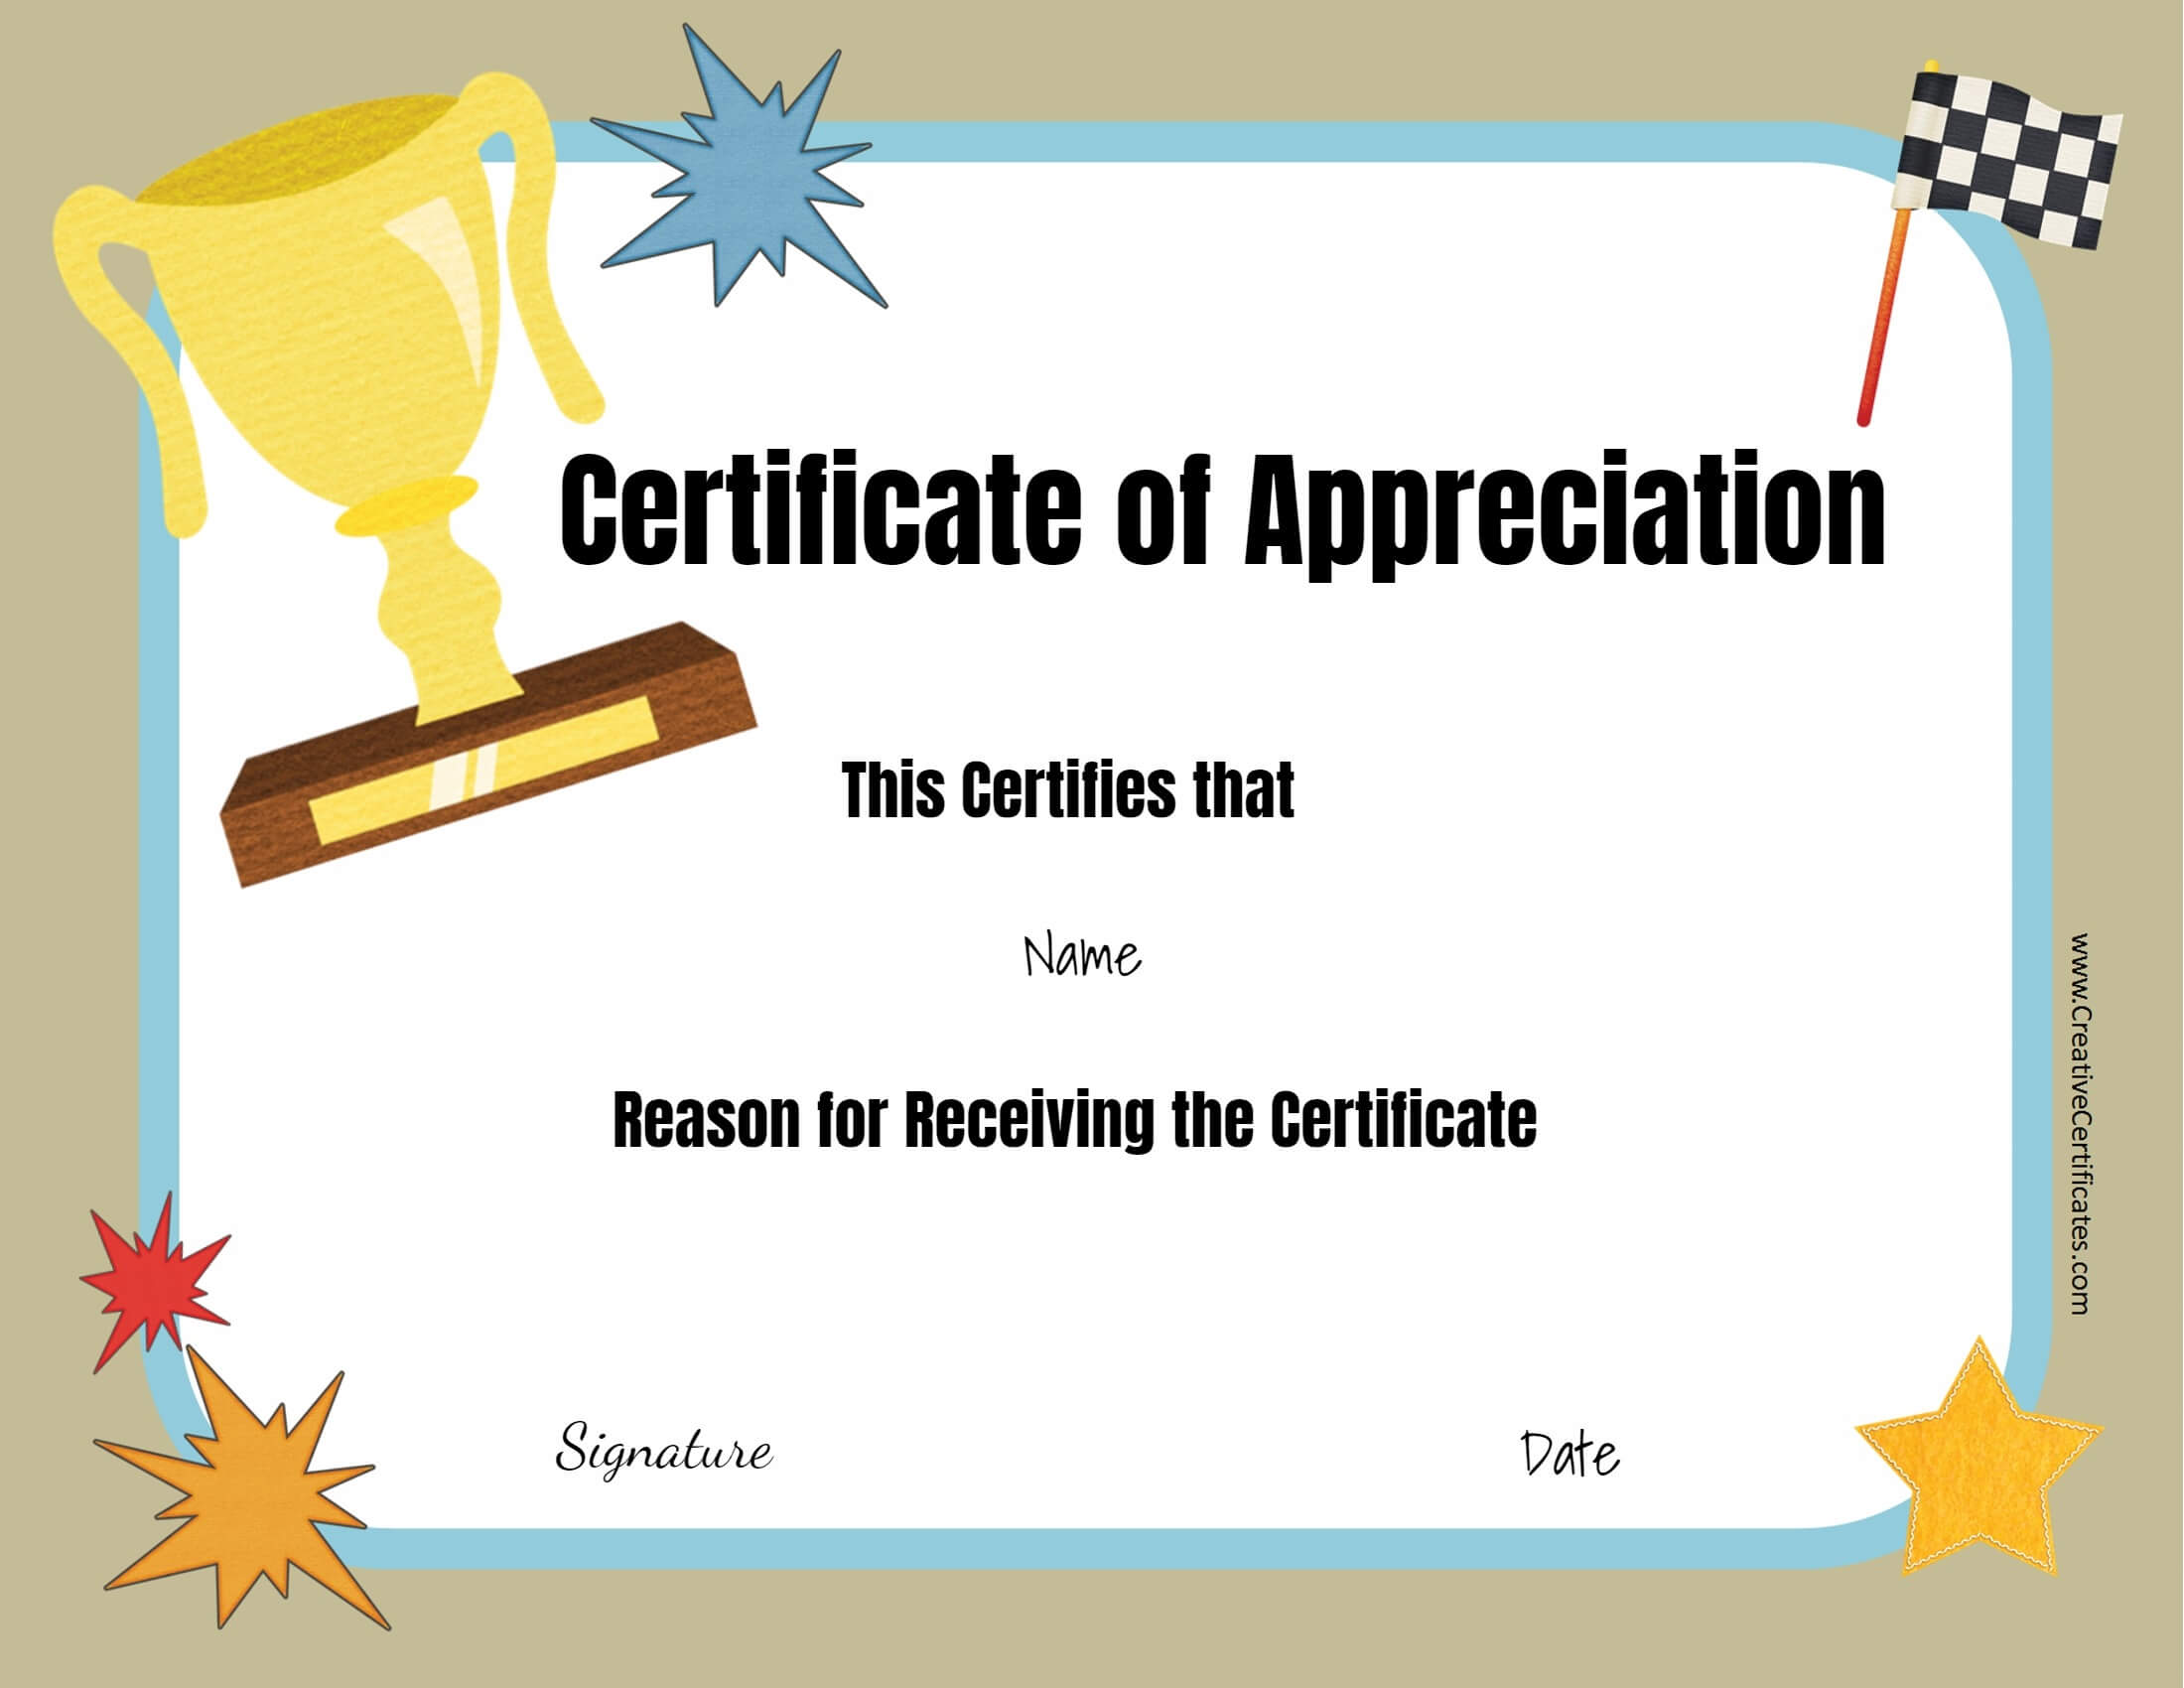 Free Custom Certificate Templates | Instant Download pertaining to Free Funny Certificate Templates For Word